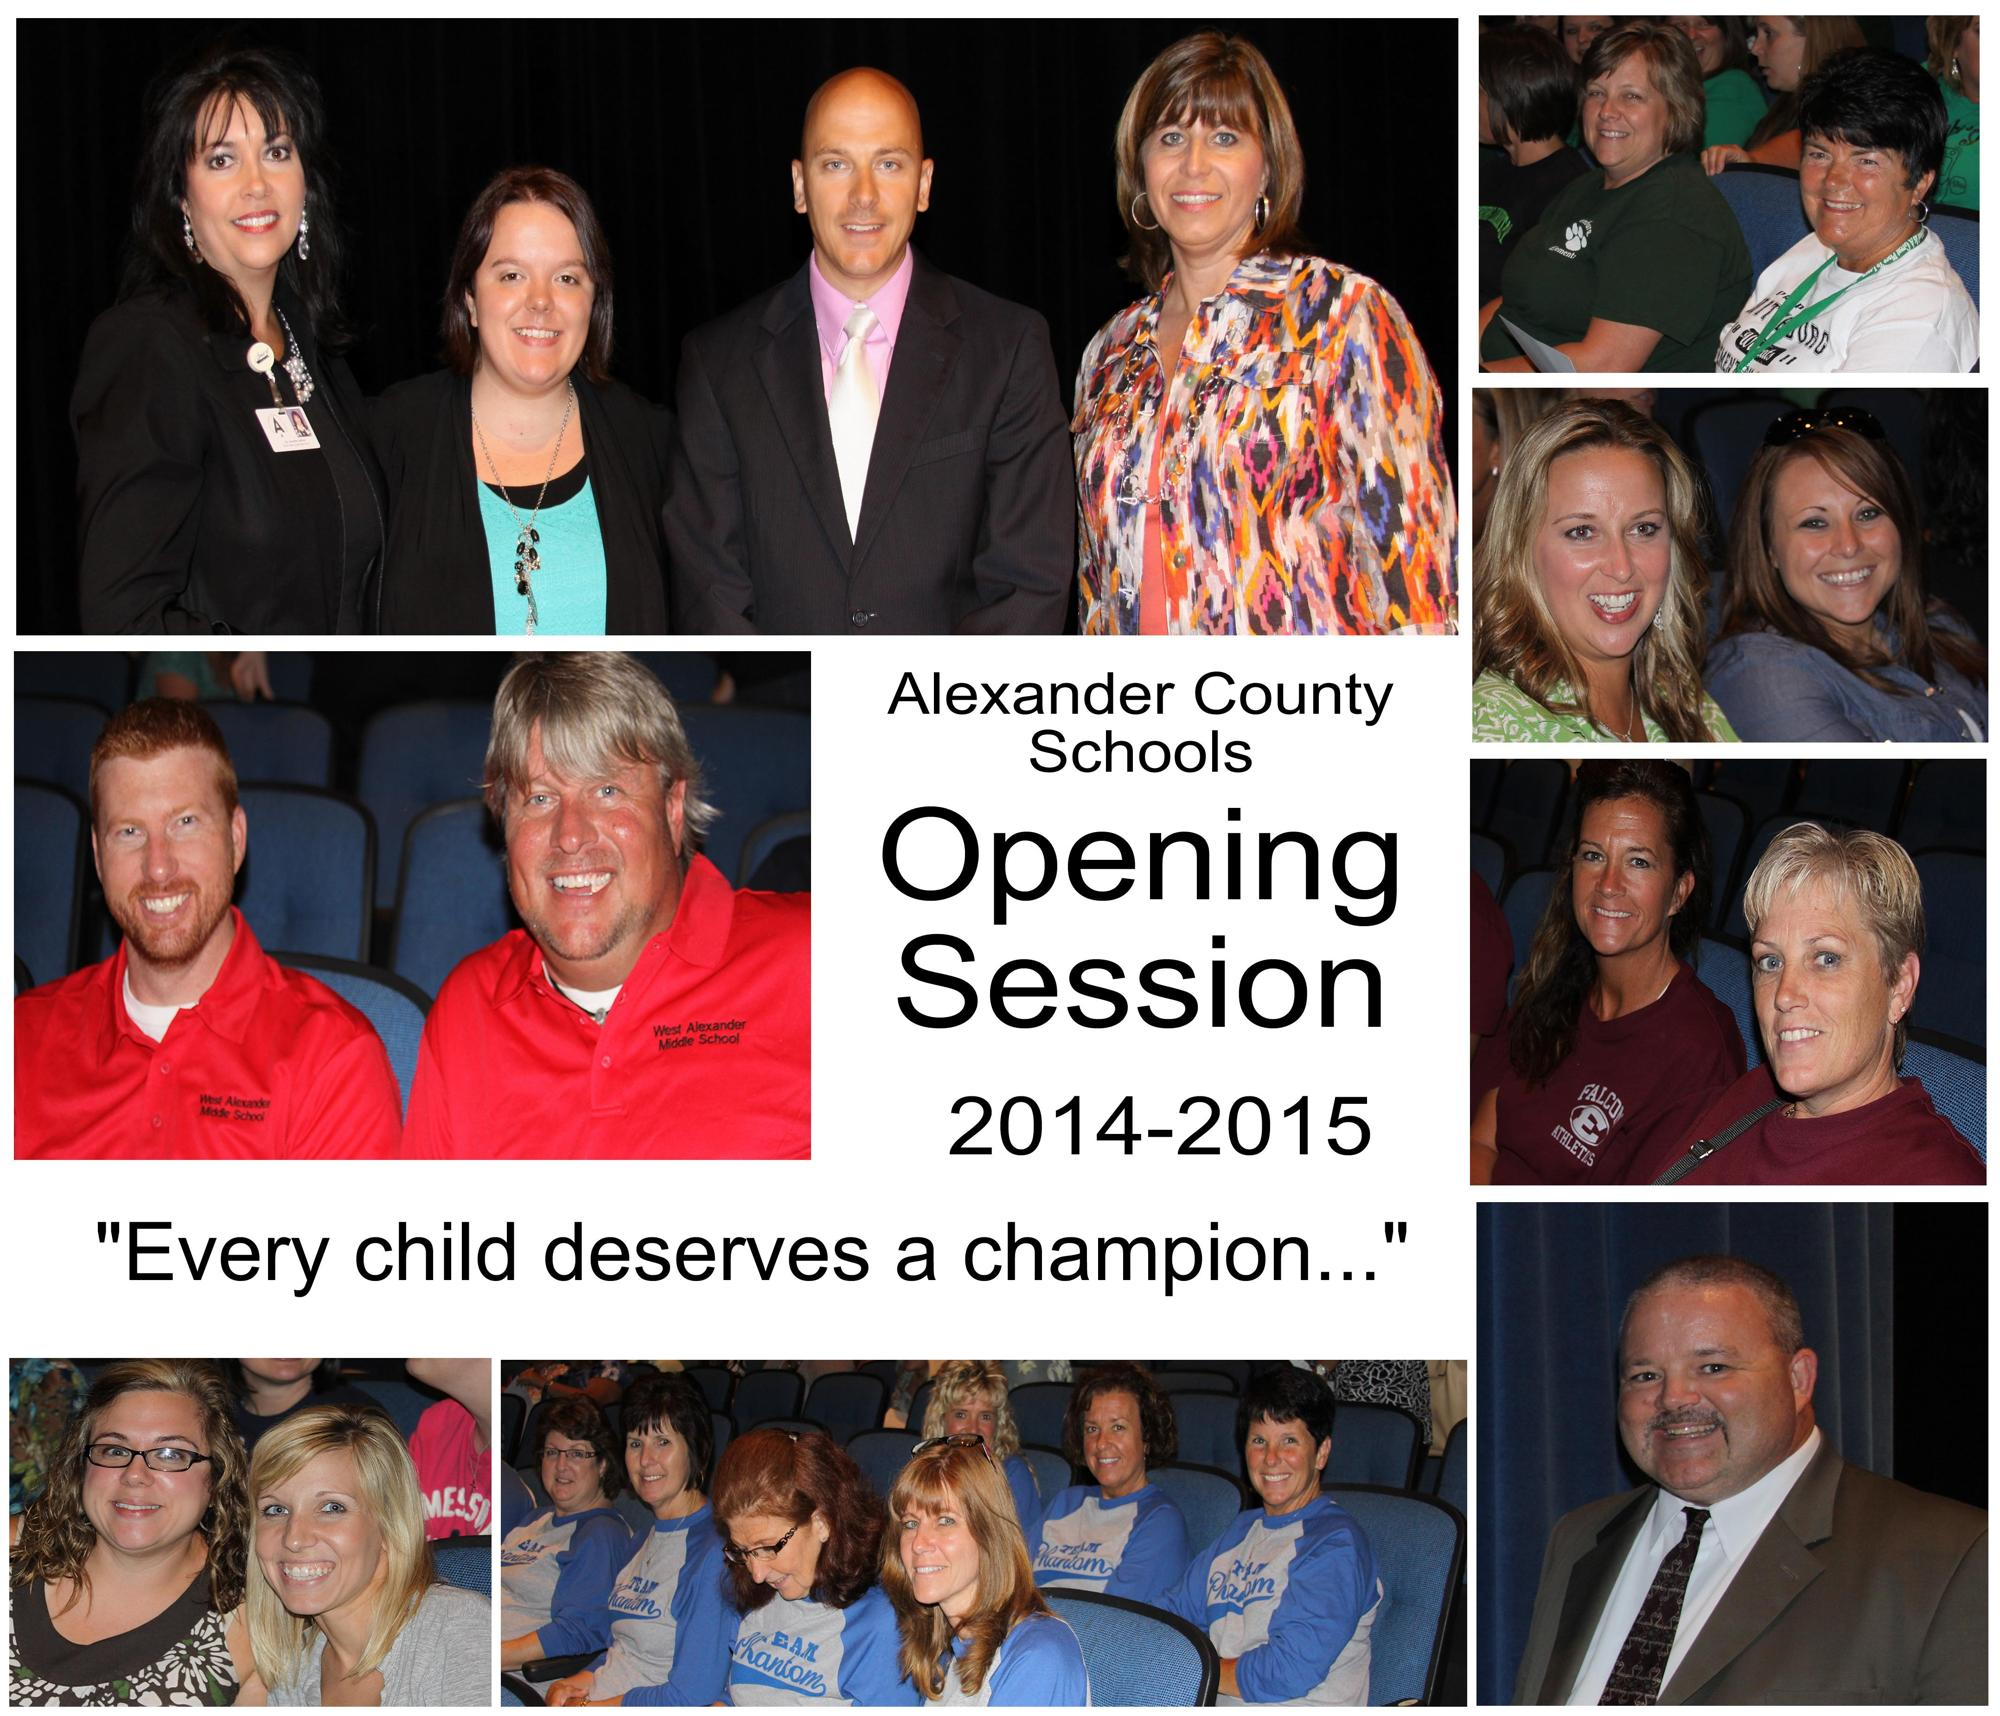 ACS Opening Session Prepares Staff for New Year